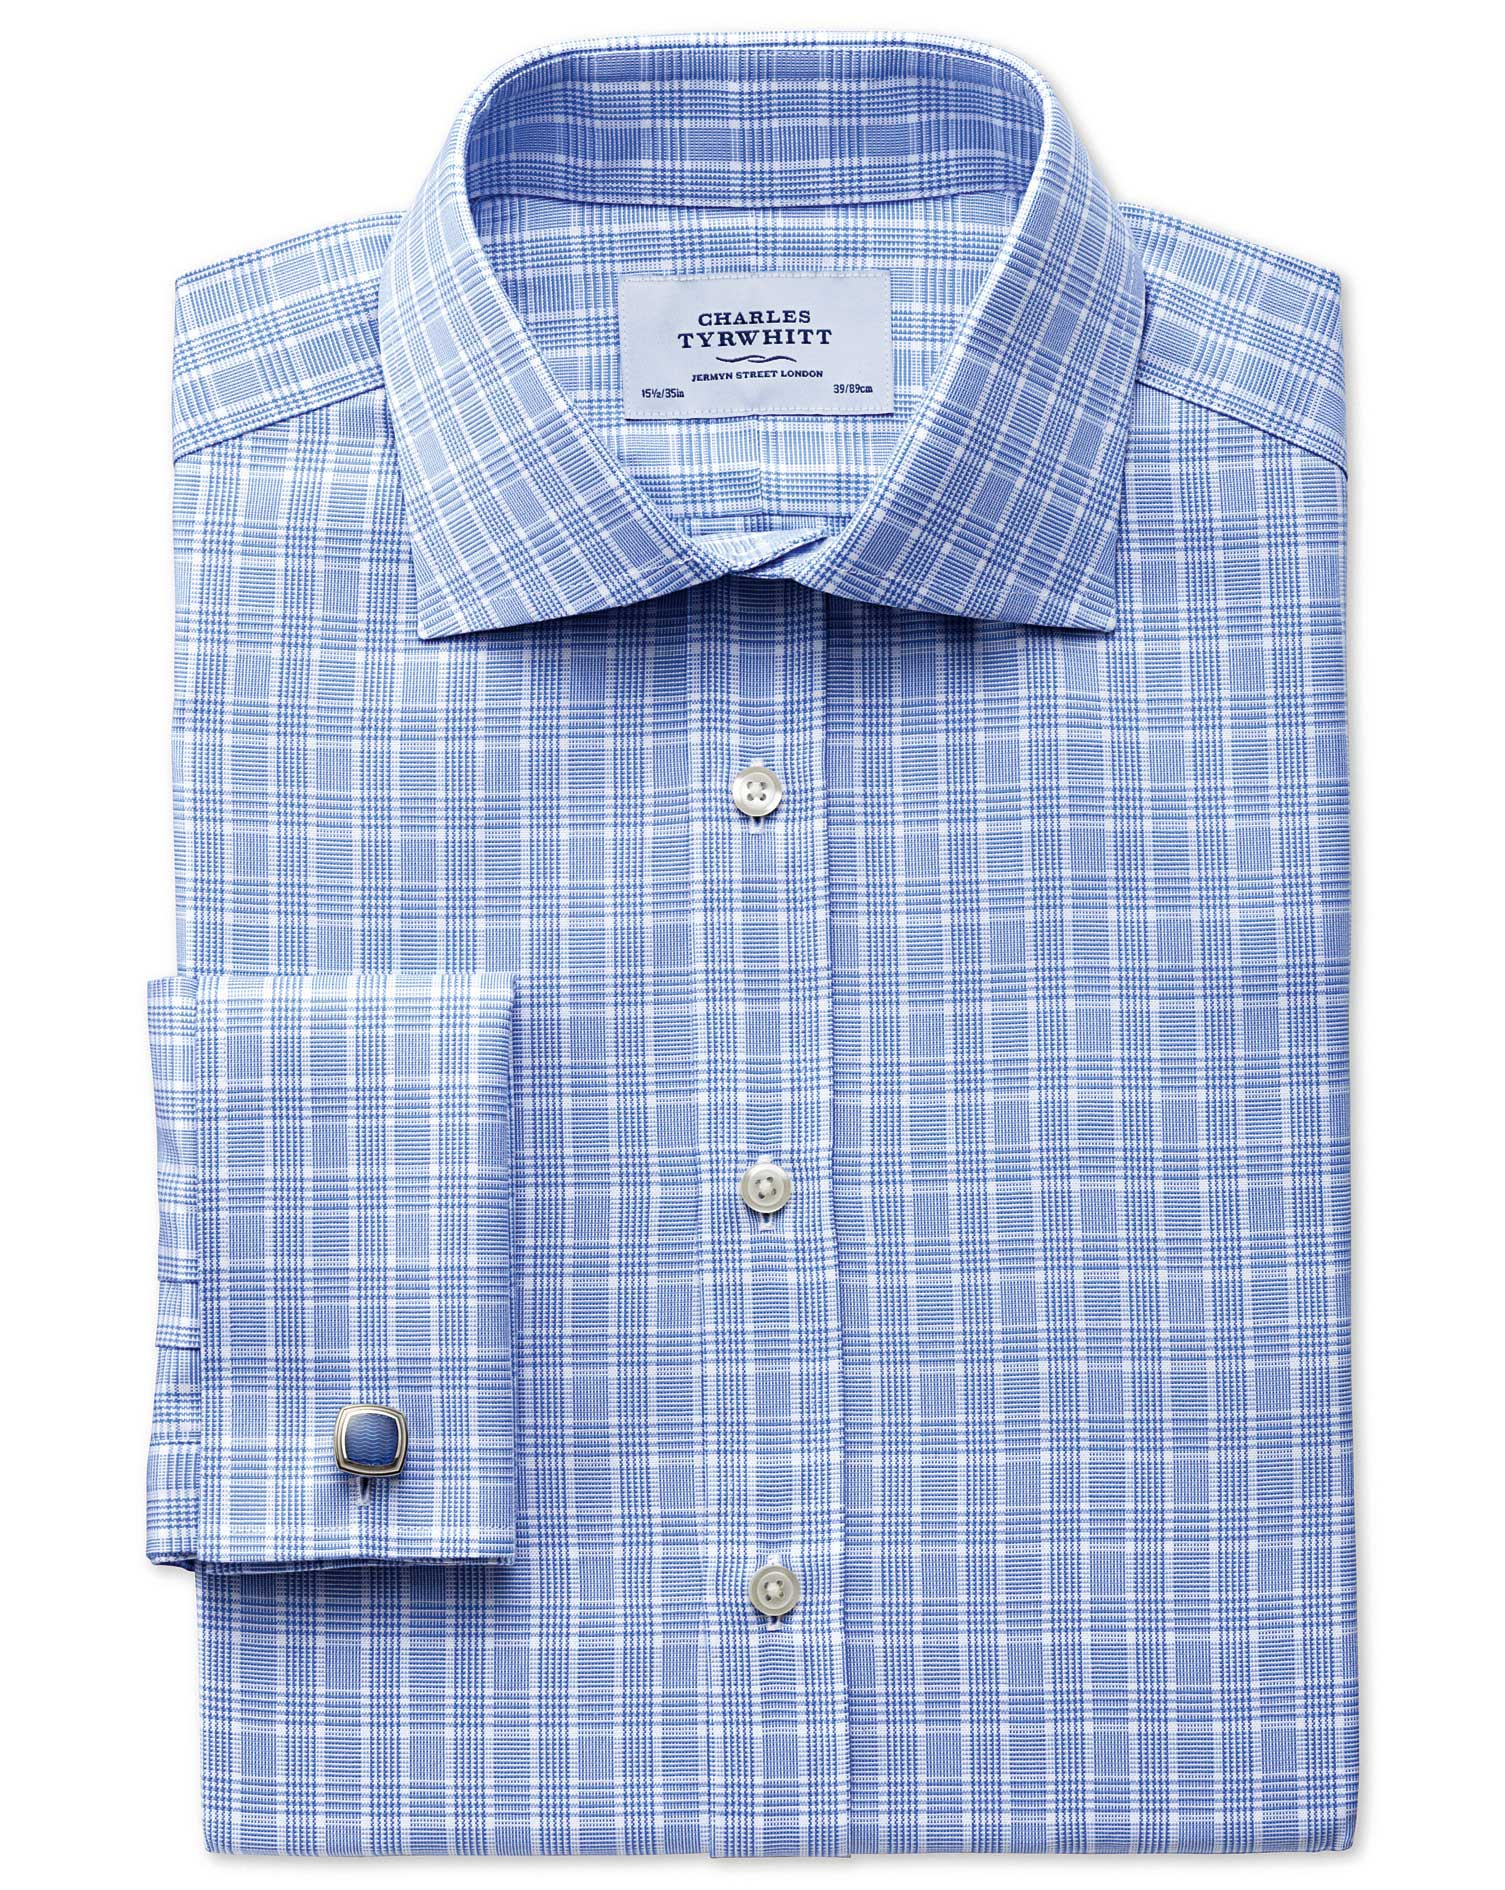 Extra Slim Fit Prince Of Wales Basketweave Sky Blue Cotton Formal Shirt Single Cuff Size 15/35 by Ch